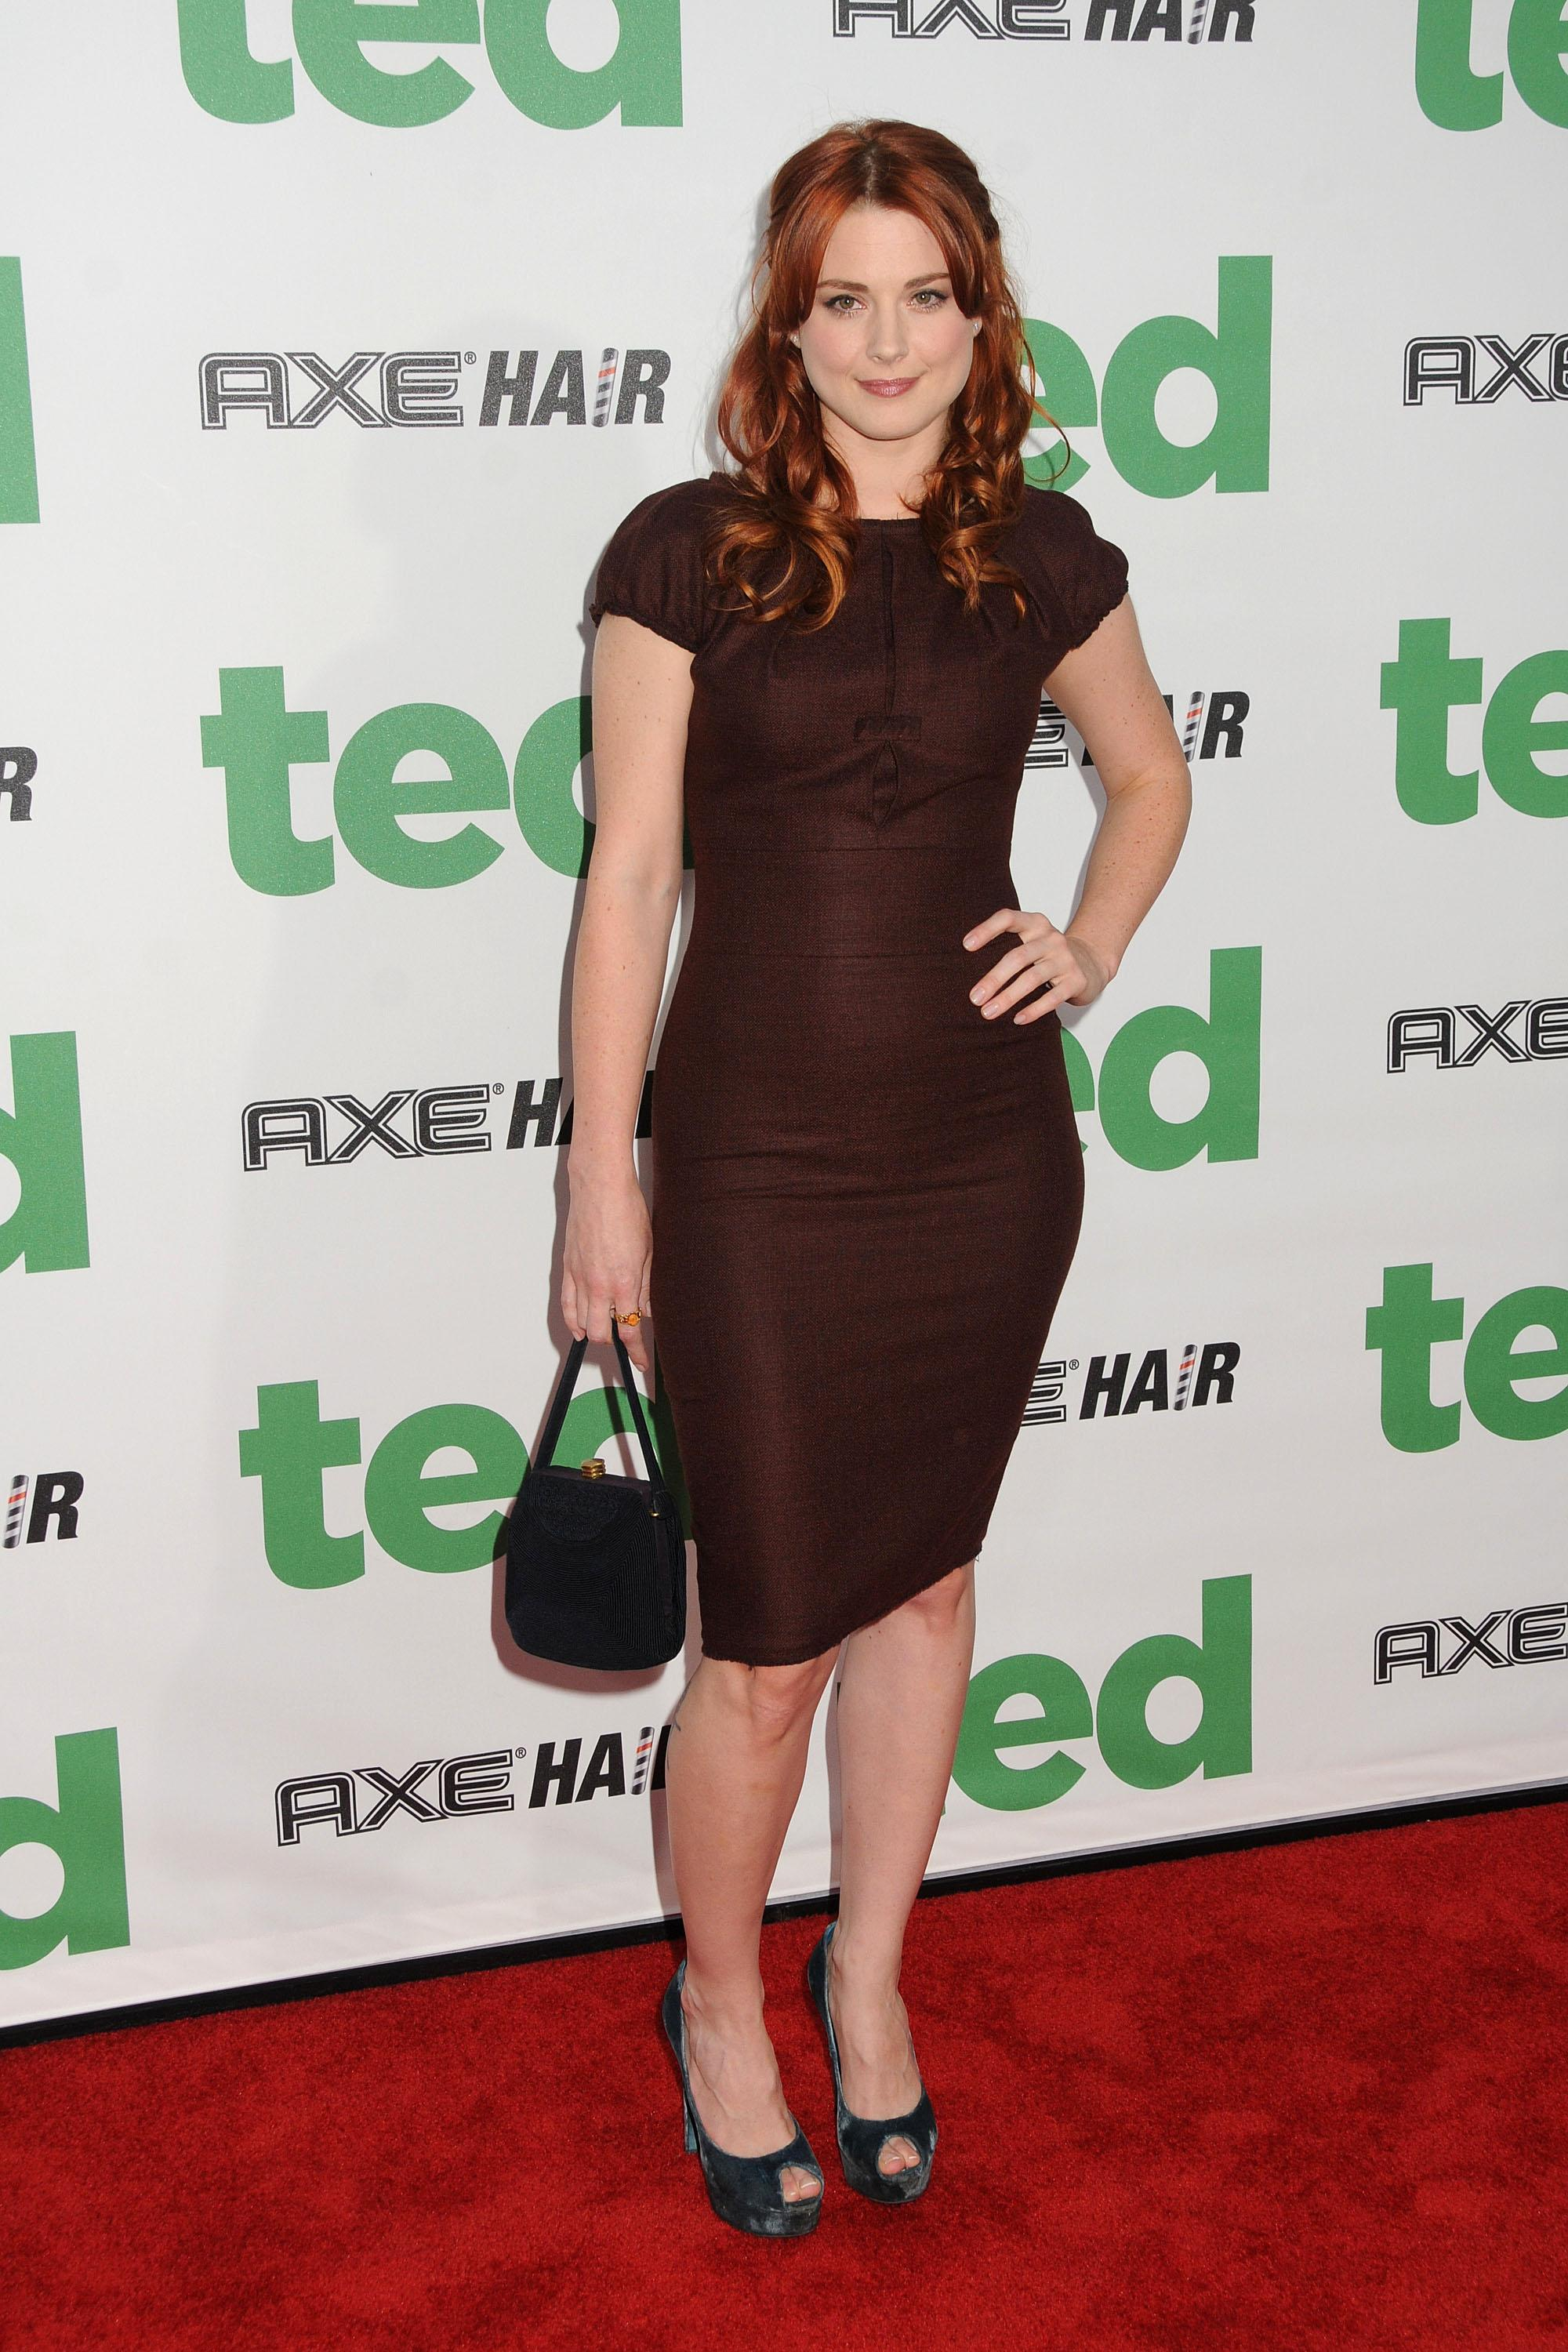 Alexandra Breckenridge Foot Image Search Results Picture Pictures